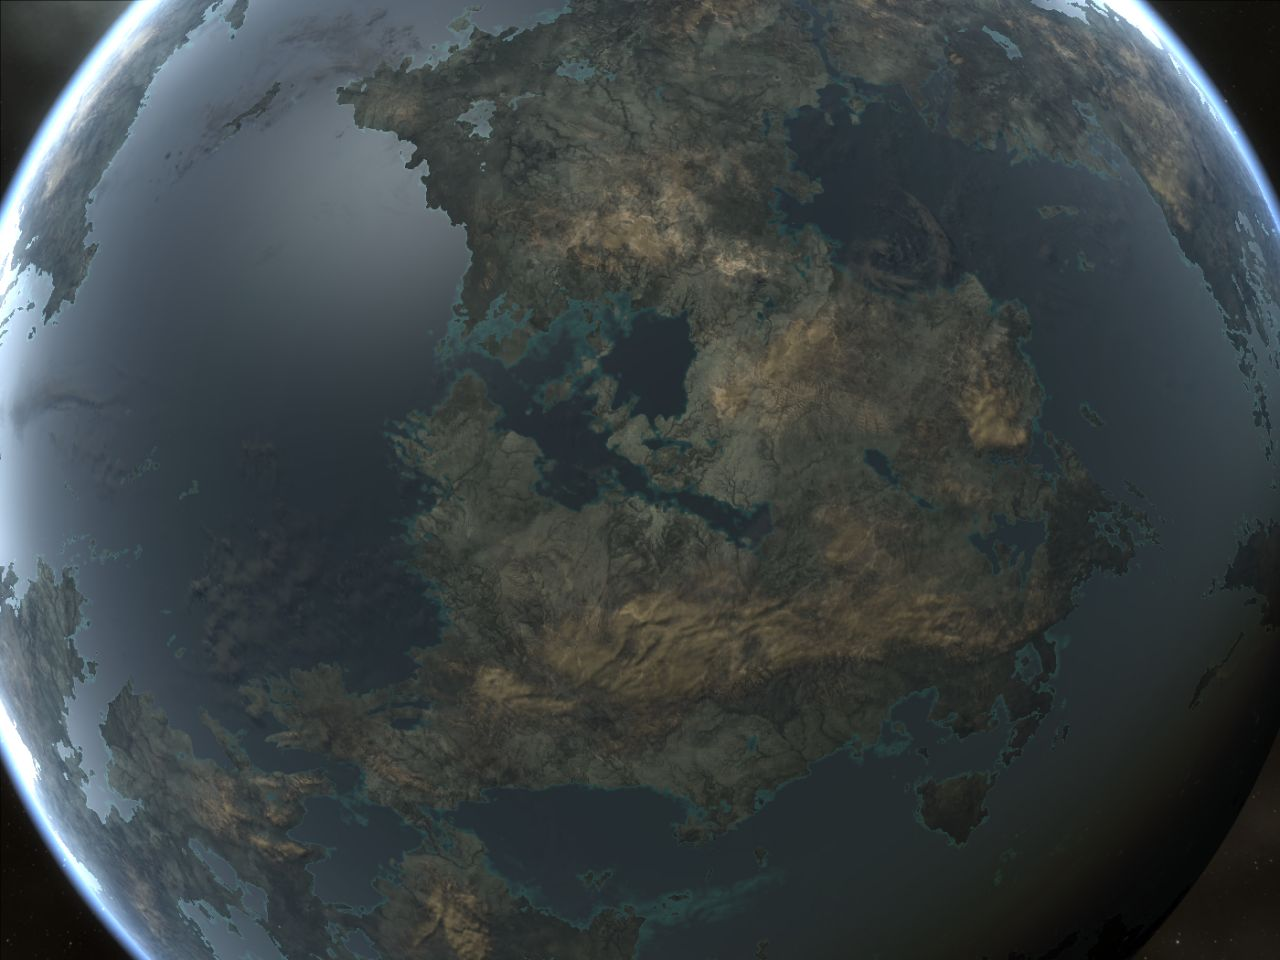 eve online planets - photo #22